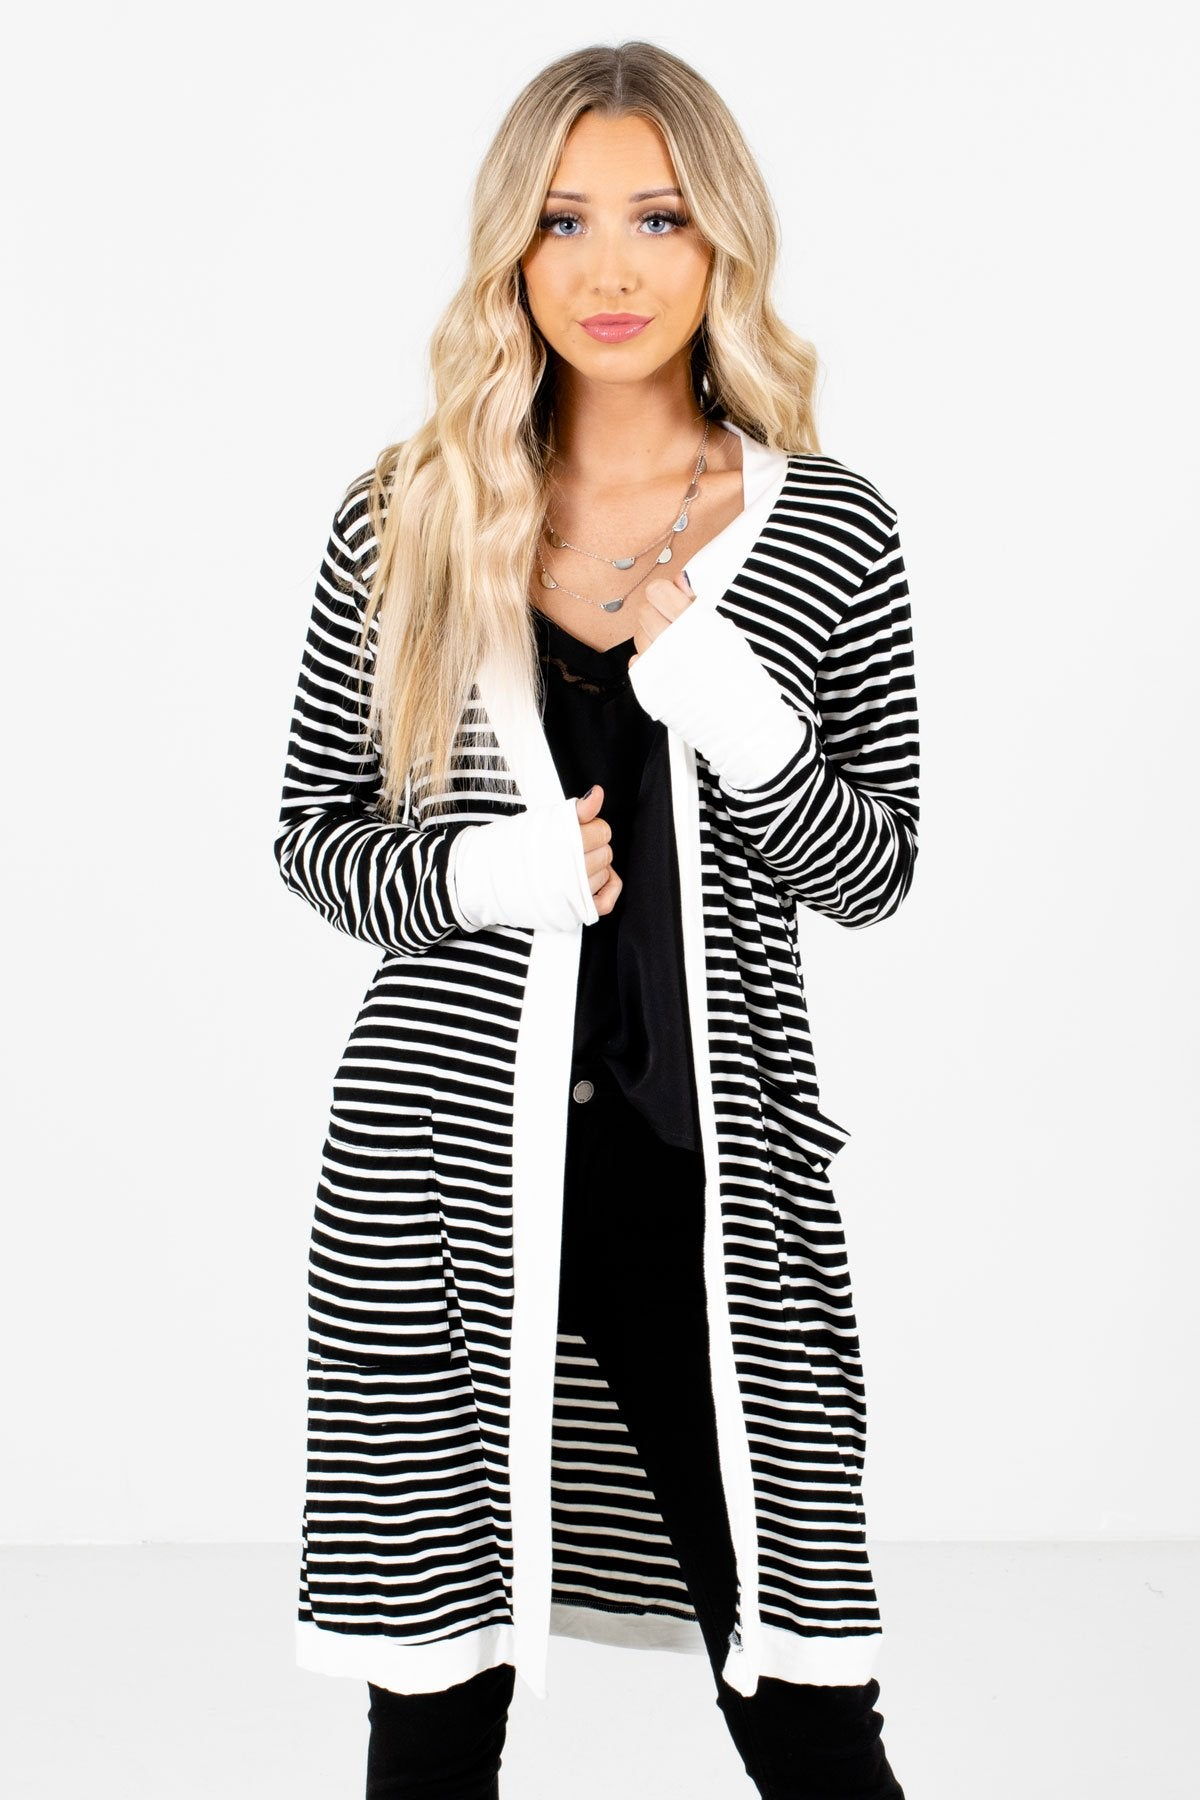 Black and White Striped Pattern Boutique Cardigans for Women